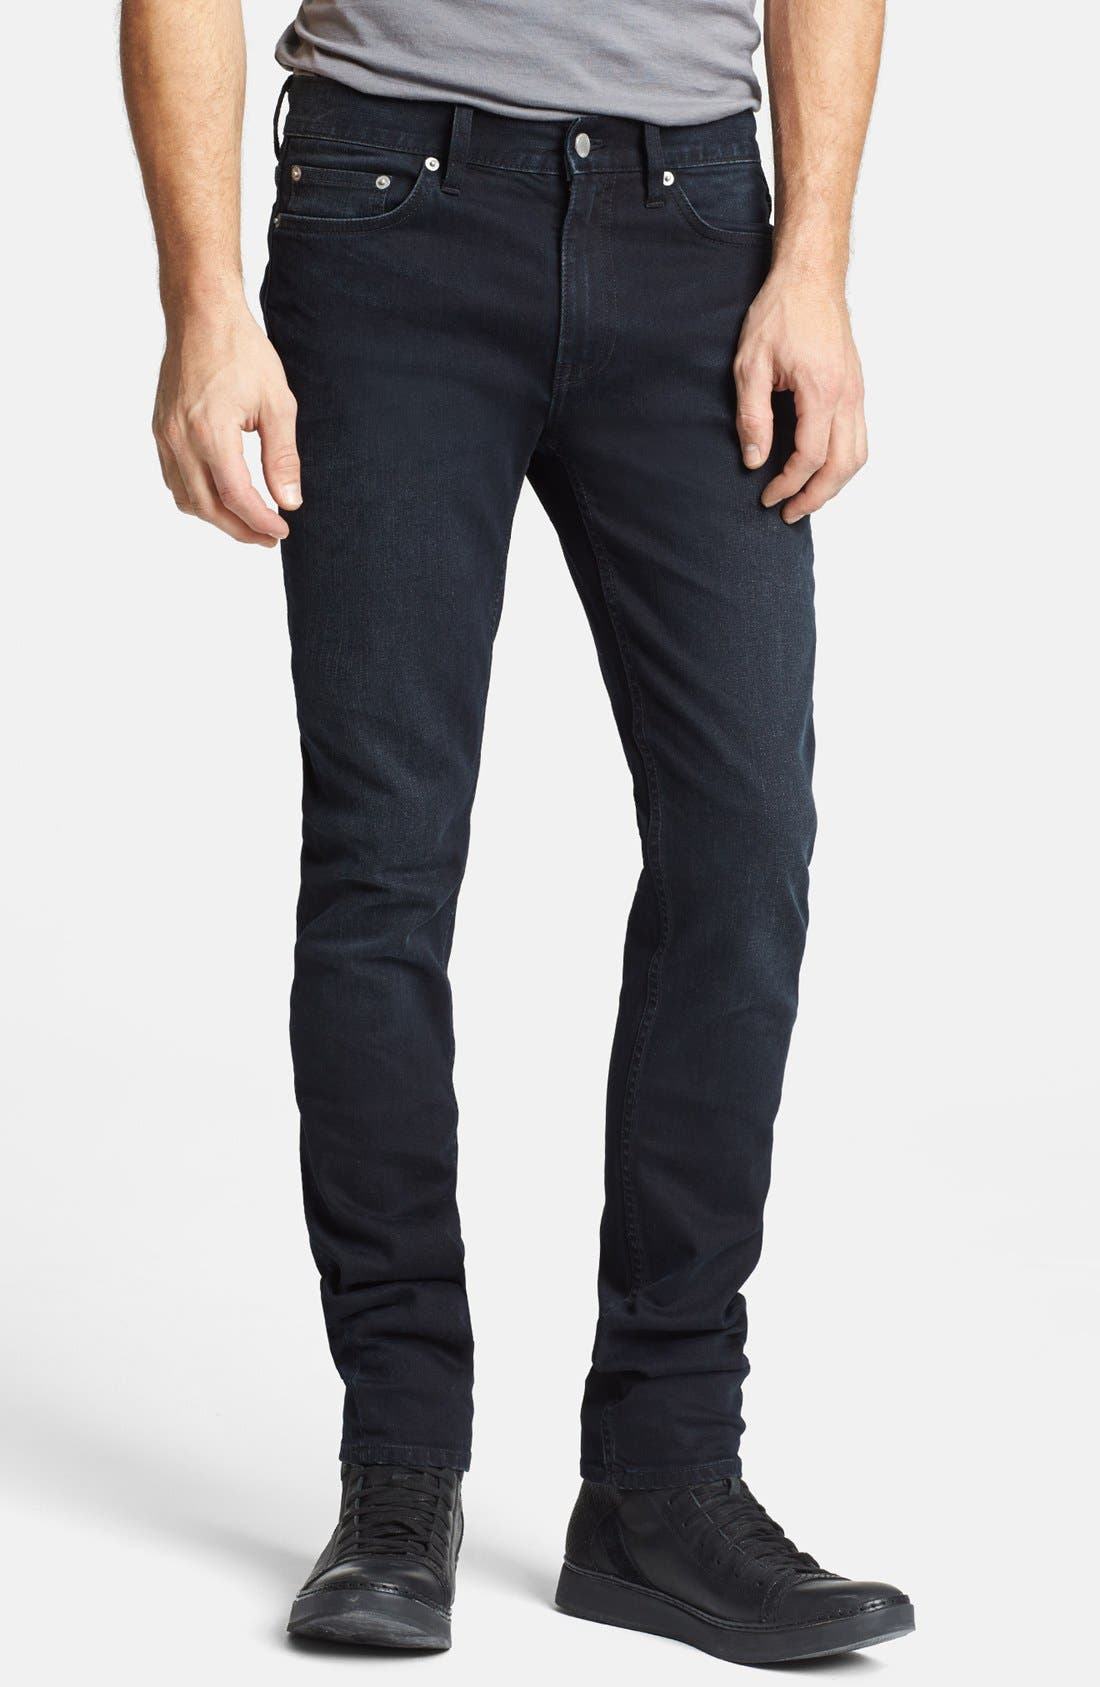 'Jeans 5' Slim Straight Leg Jeans, Main, color, 001